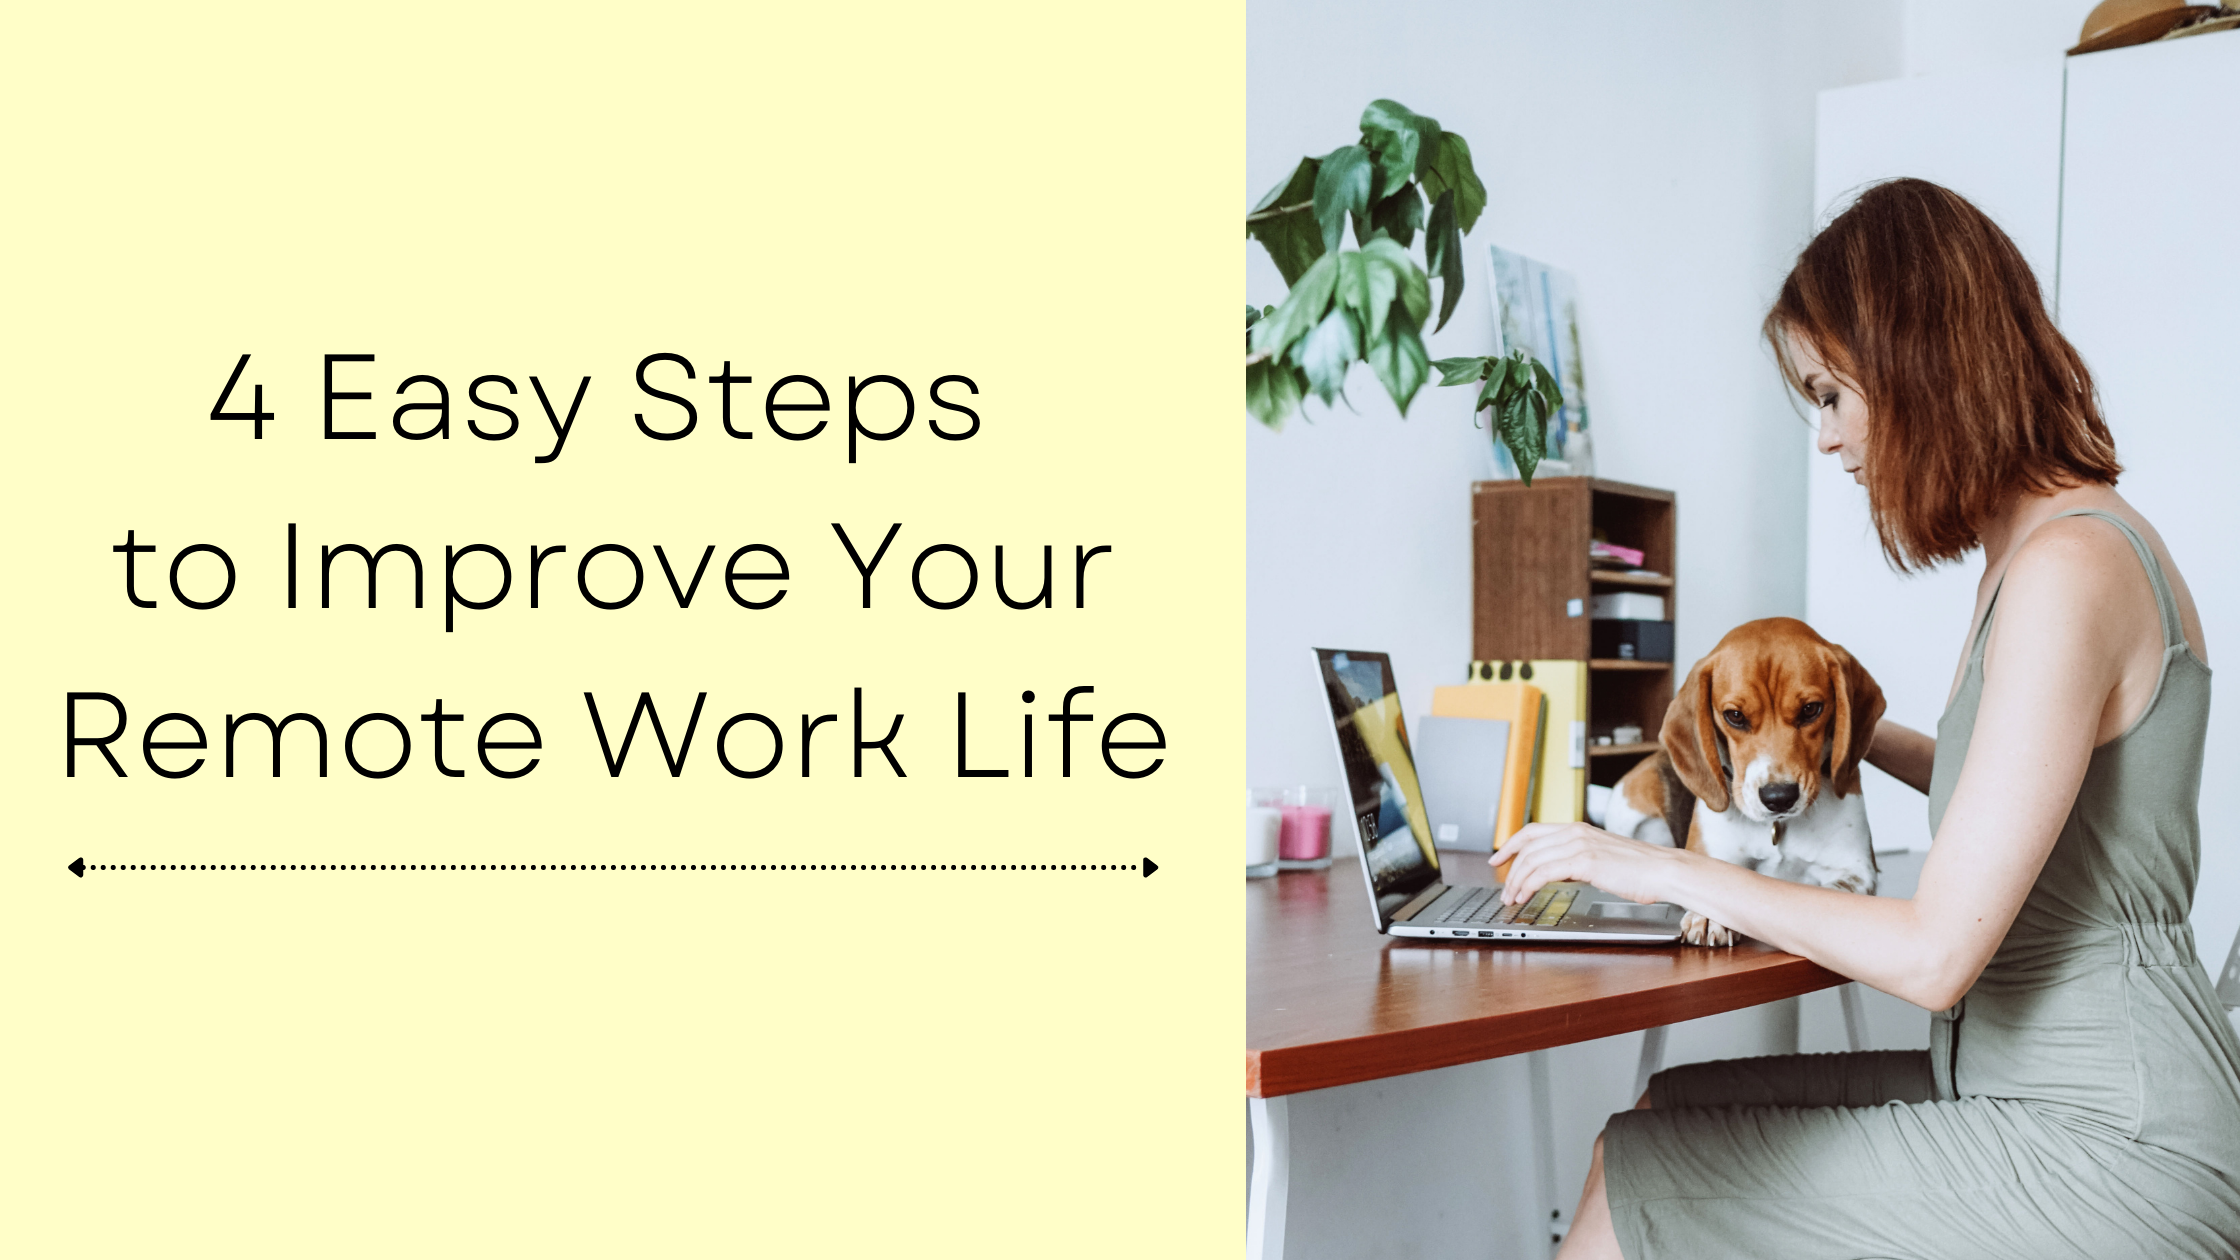 4 Easy Steps to Improve Your Remote Work Life